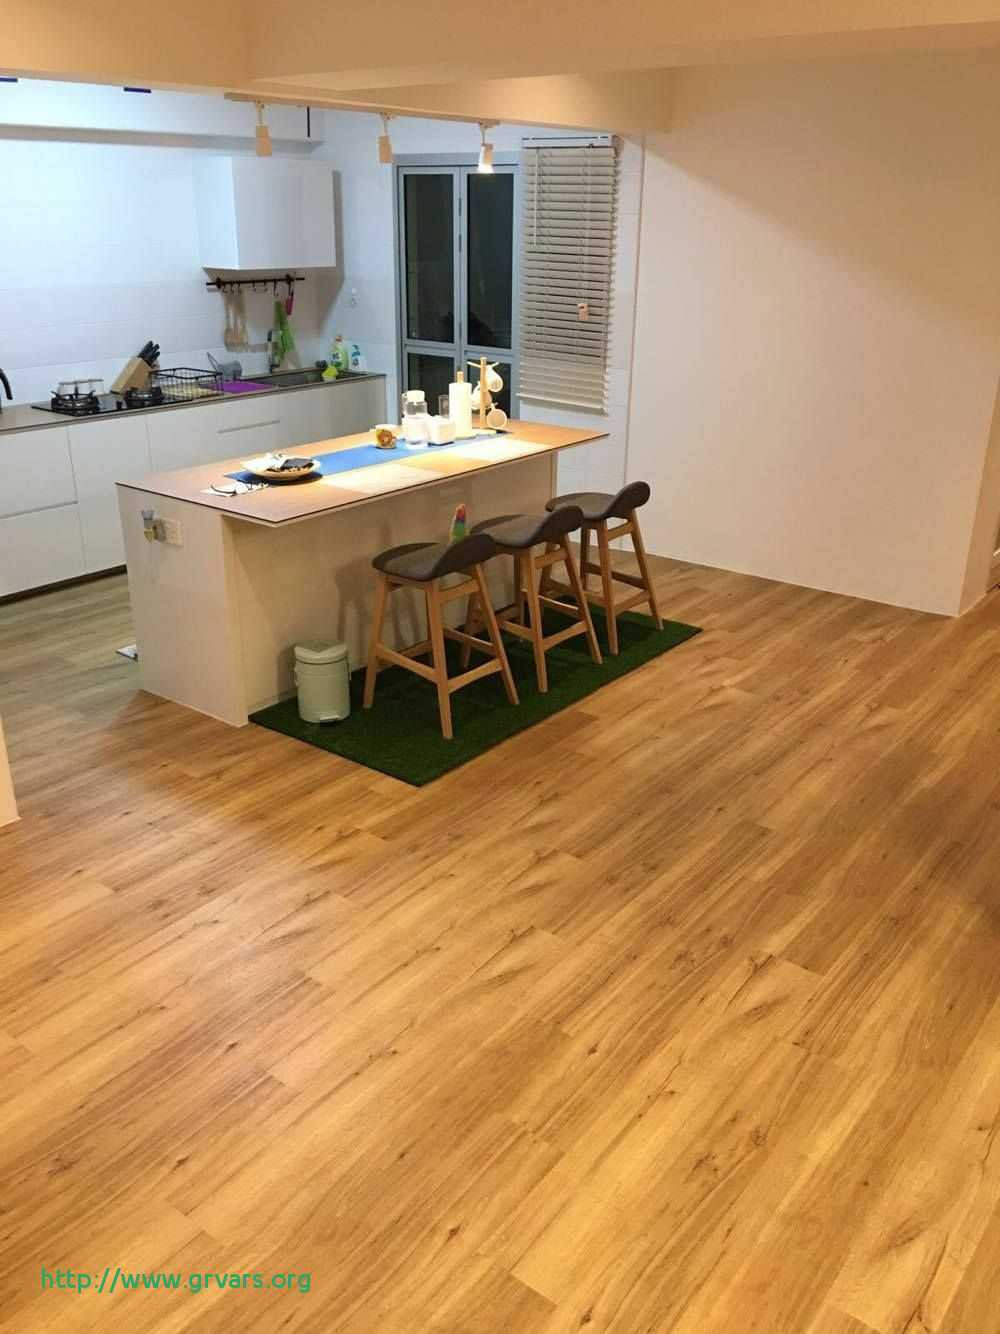 installing engineered hardwood flooring nail down of 18 frais how to put down hardwood flooring ideas blog in how to put down hardwood flooring inspirant with patented clic locking installation technology and no hacking